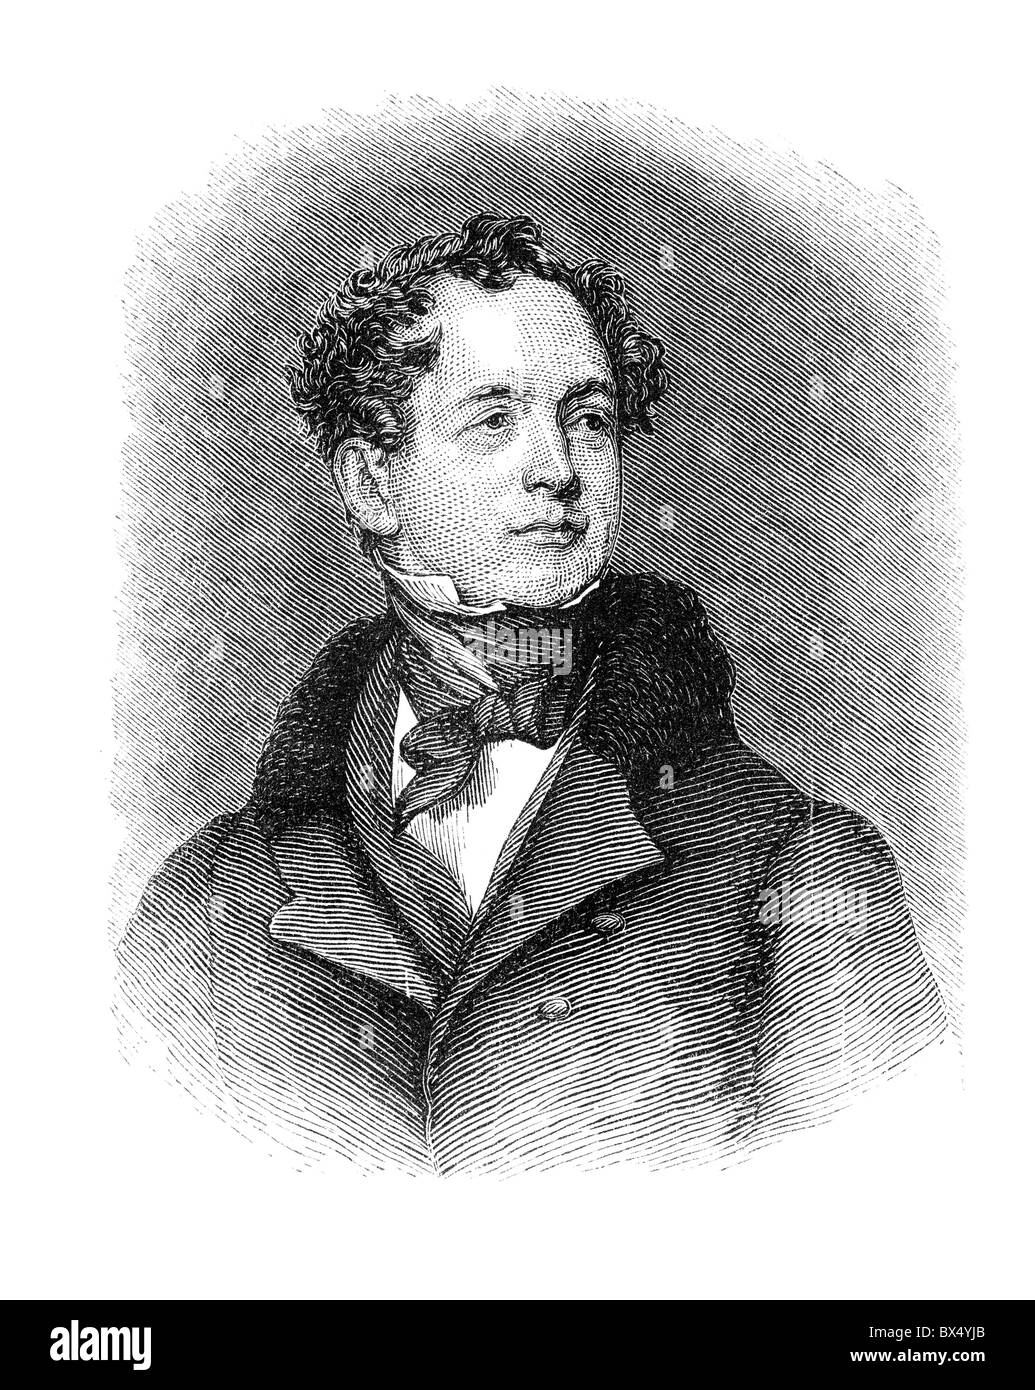 Thomas Moore (28 May 1779 – 25 February 1852) was an Irish poet, singer, songwriter, and entertainer - Stock Image